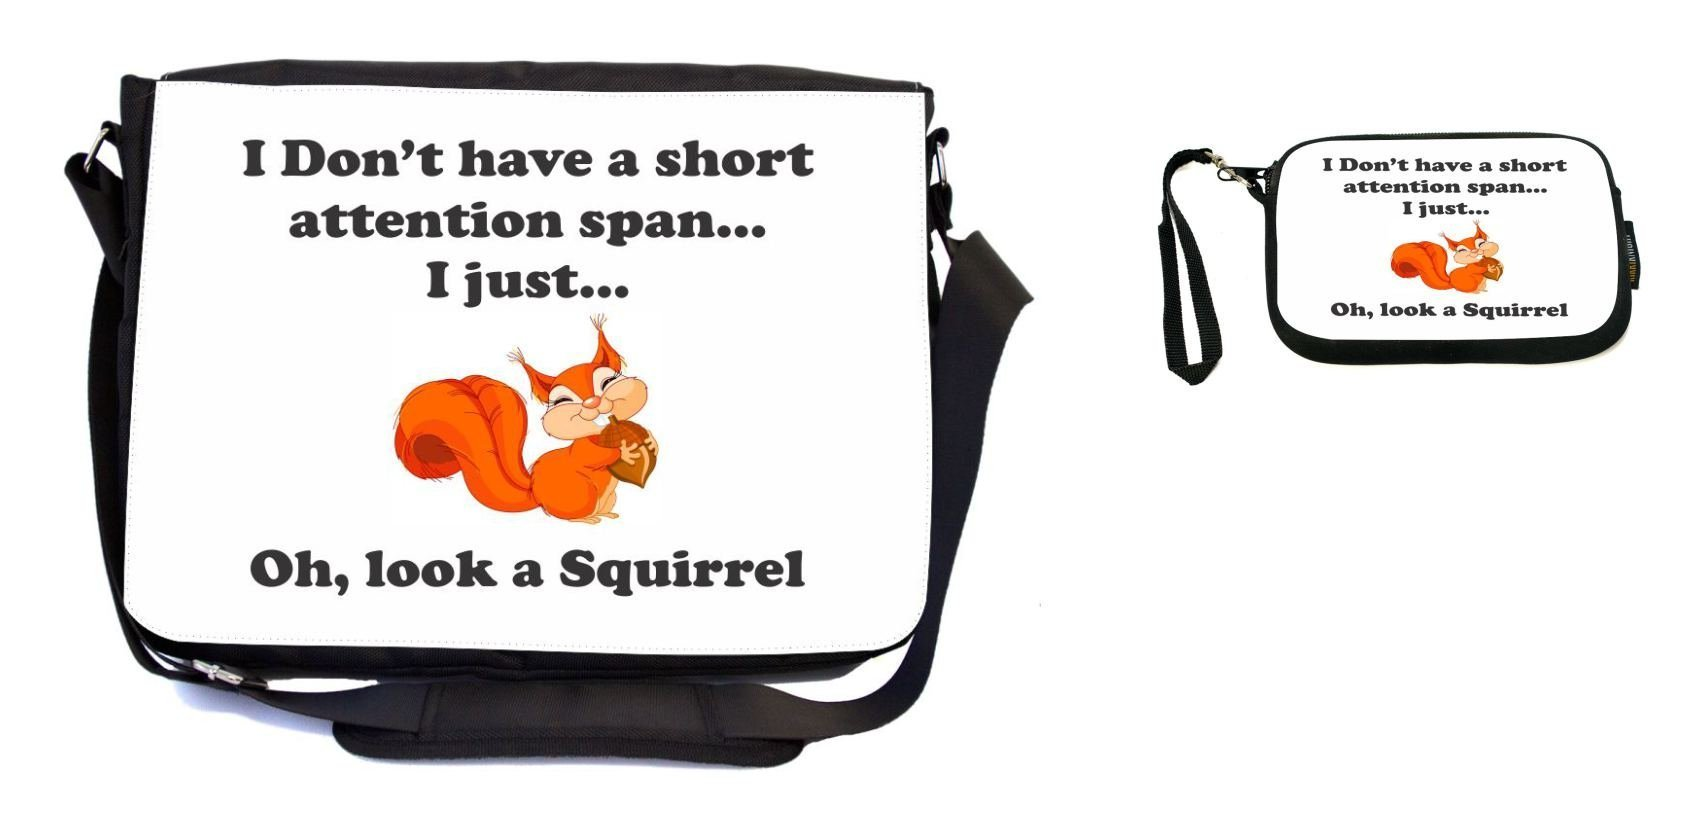 Rikki Knight Funny I Don't Have a Short Attention Span Design Messenger Bag - School Bag - Laptop Bag - with Padded Insert - Includes UKBK Premium Coin Purse